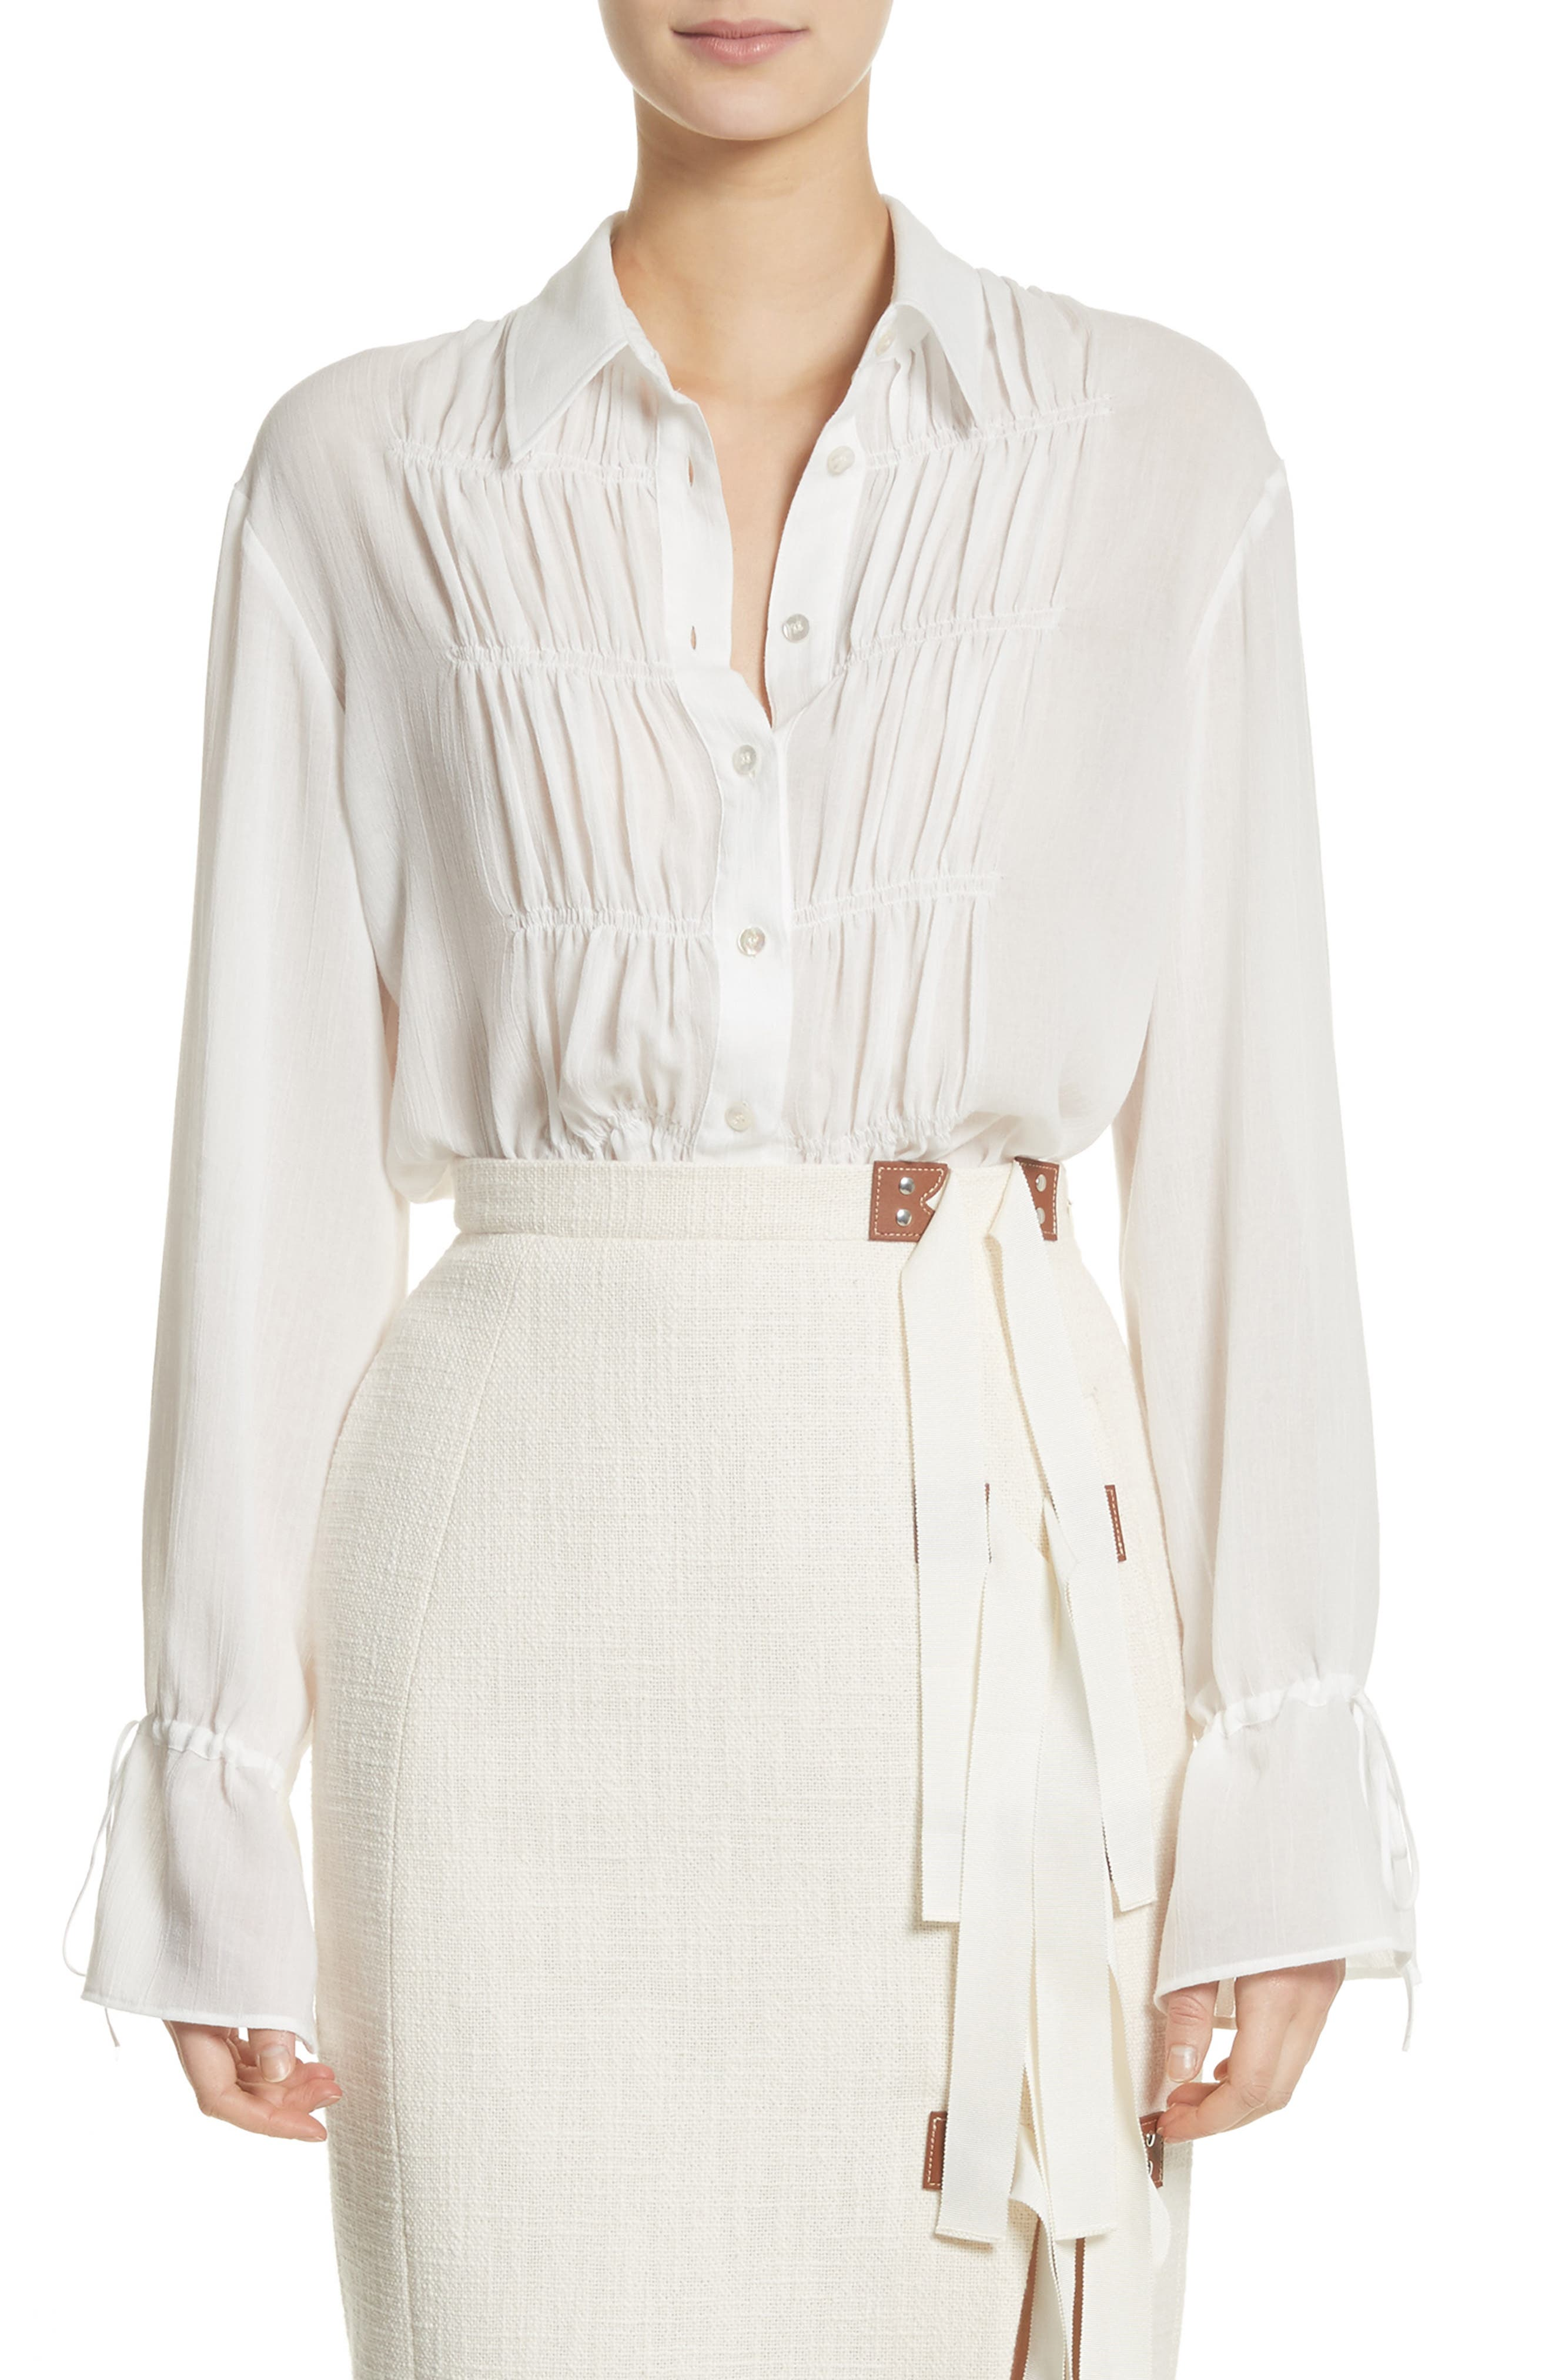 Ruched Detail Blouse,                         Main,                         color, Optic White